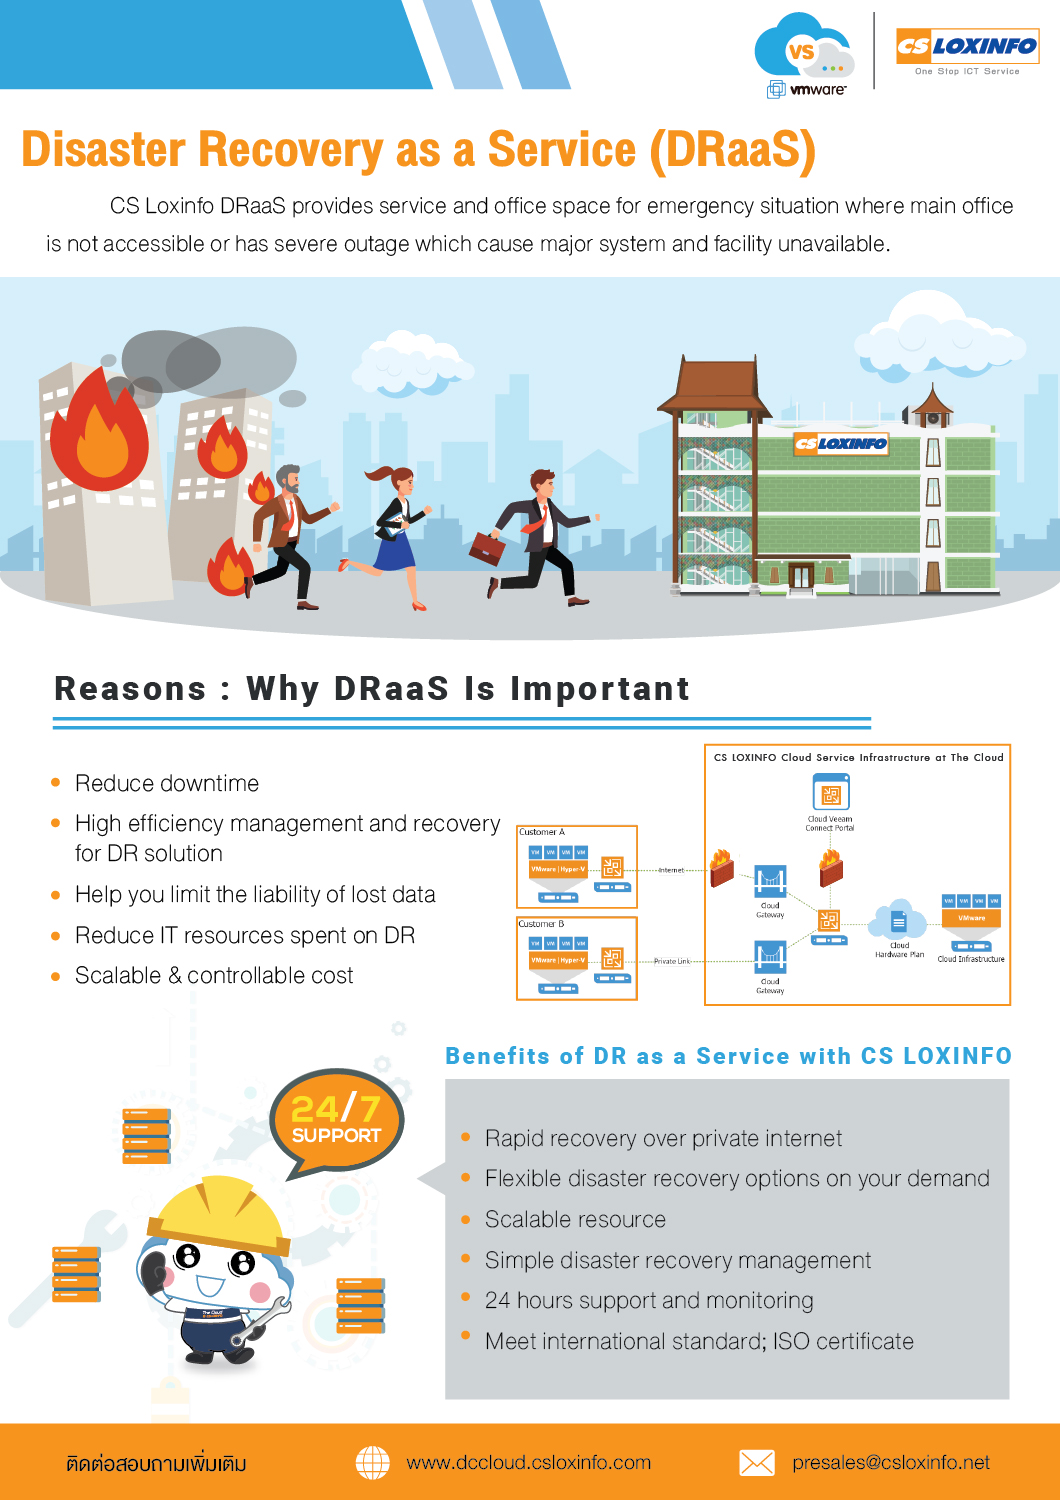 Avoiding Business downtime with Disaster Recovery as a